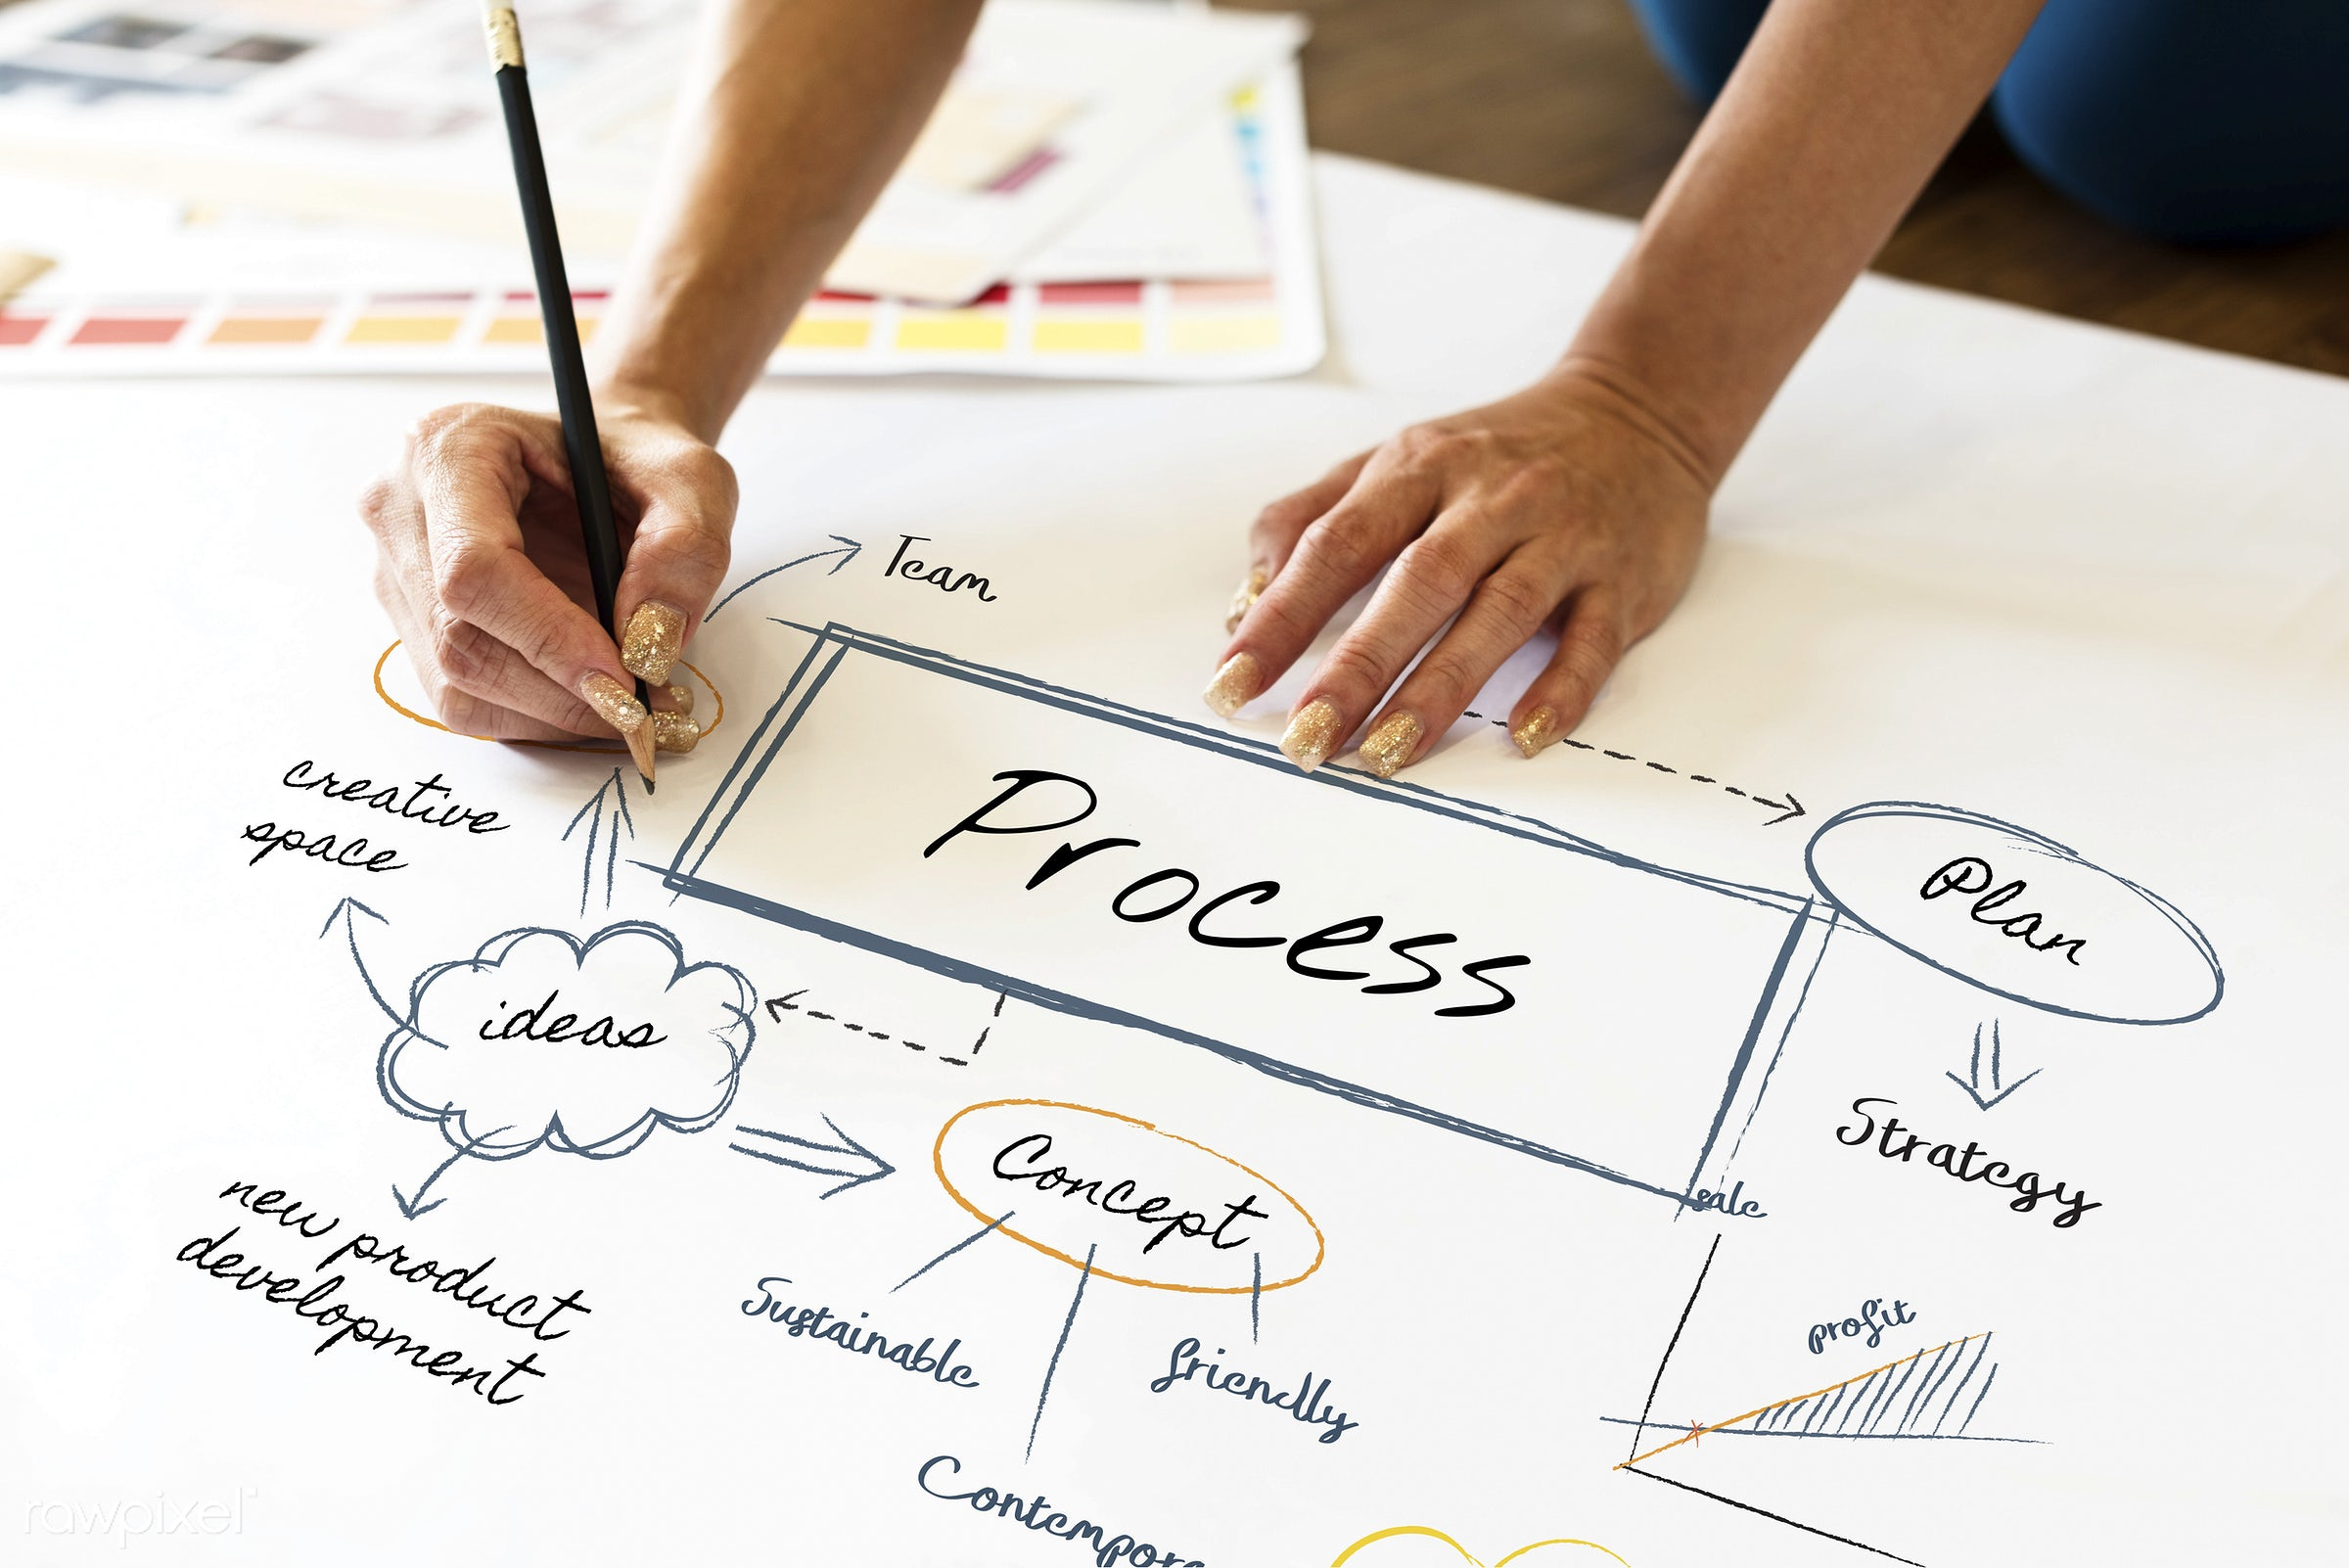 Process - process, thinking, change, paper, creativity, think, team, opportunity, inspire, contemporary, pencil, management...